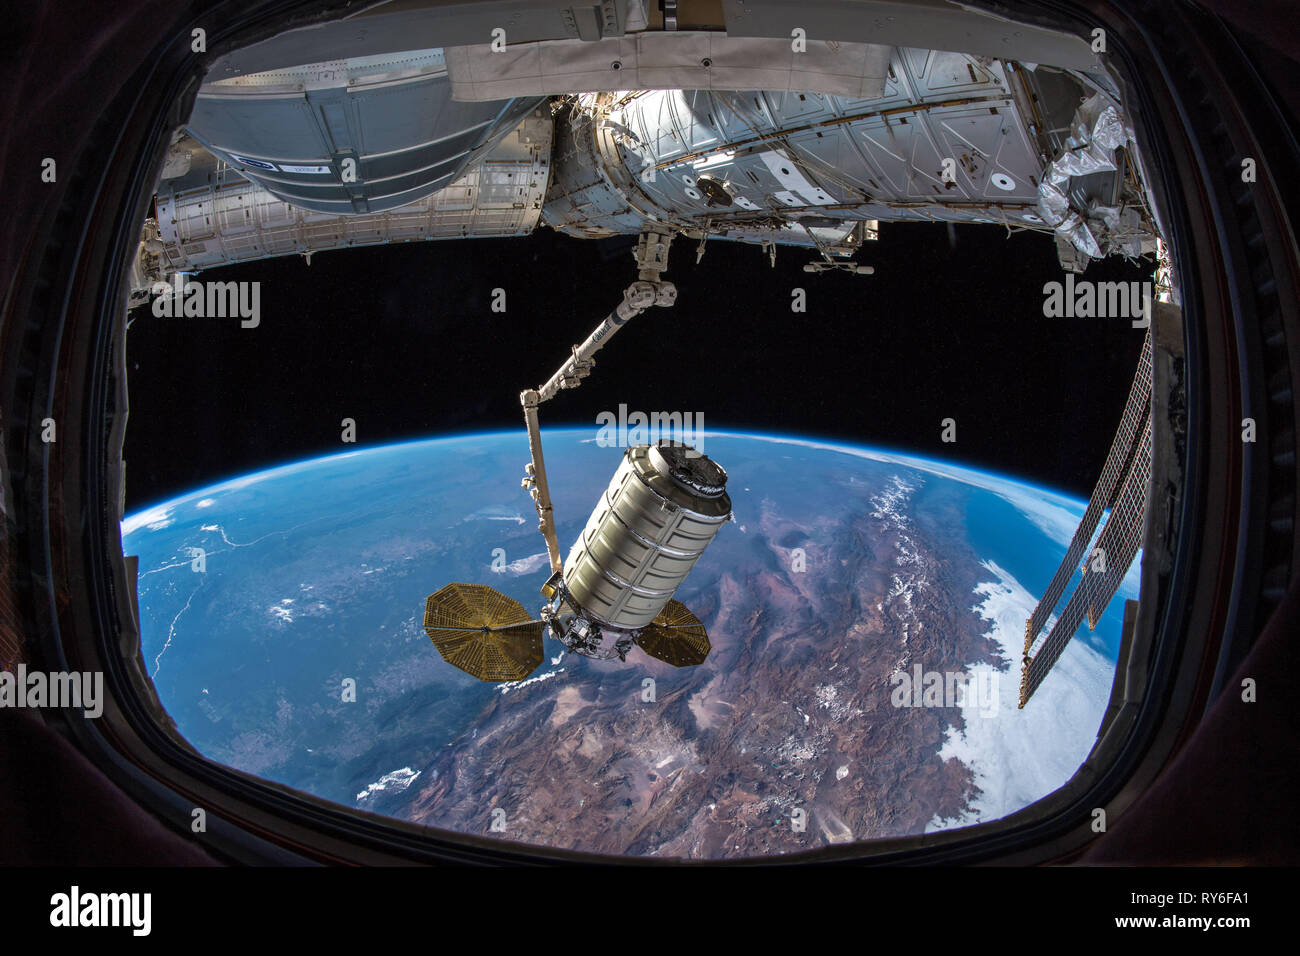 Cygnys spacecraft docked to the ISS (International Space Station), delivers research and supplies. Will depart Feb. 2019. - Stock Image